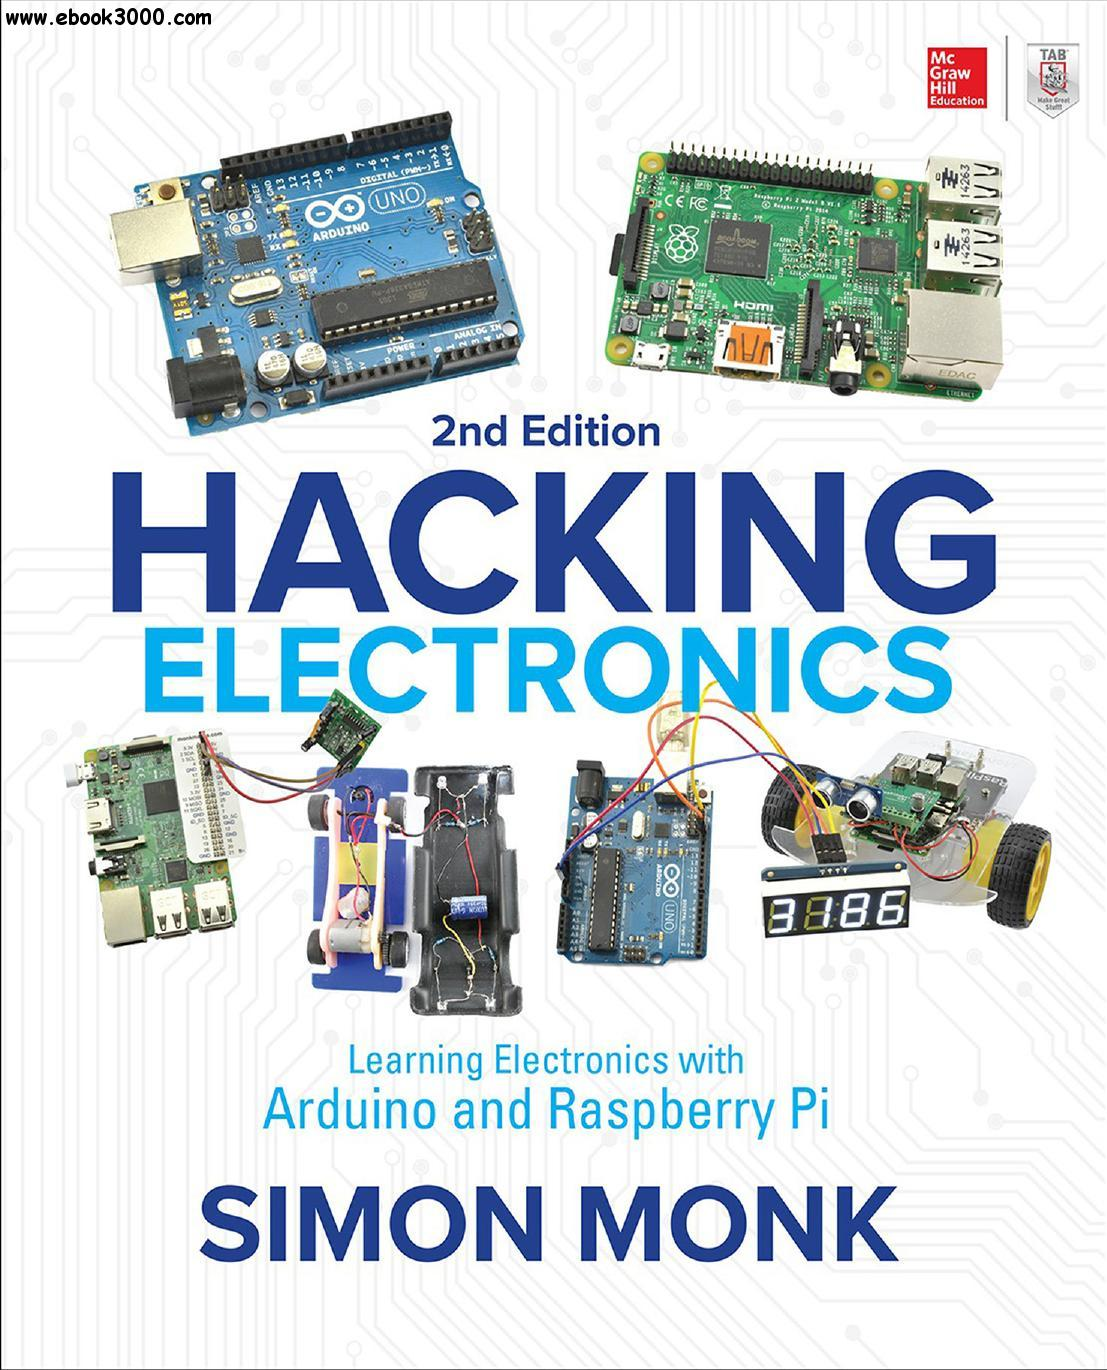 Hacking Electronics: Learning Electronics with Arduino and Raspberry Pi, 2nd Edition